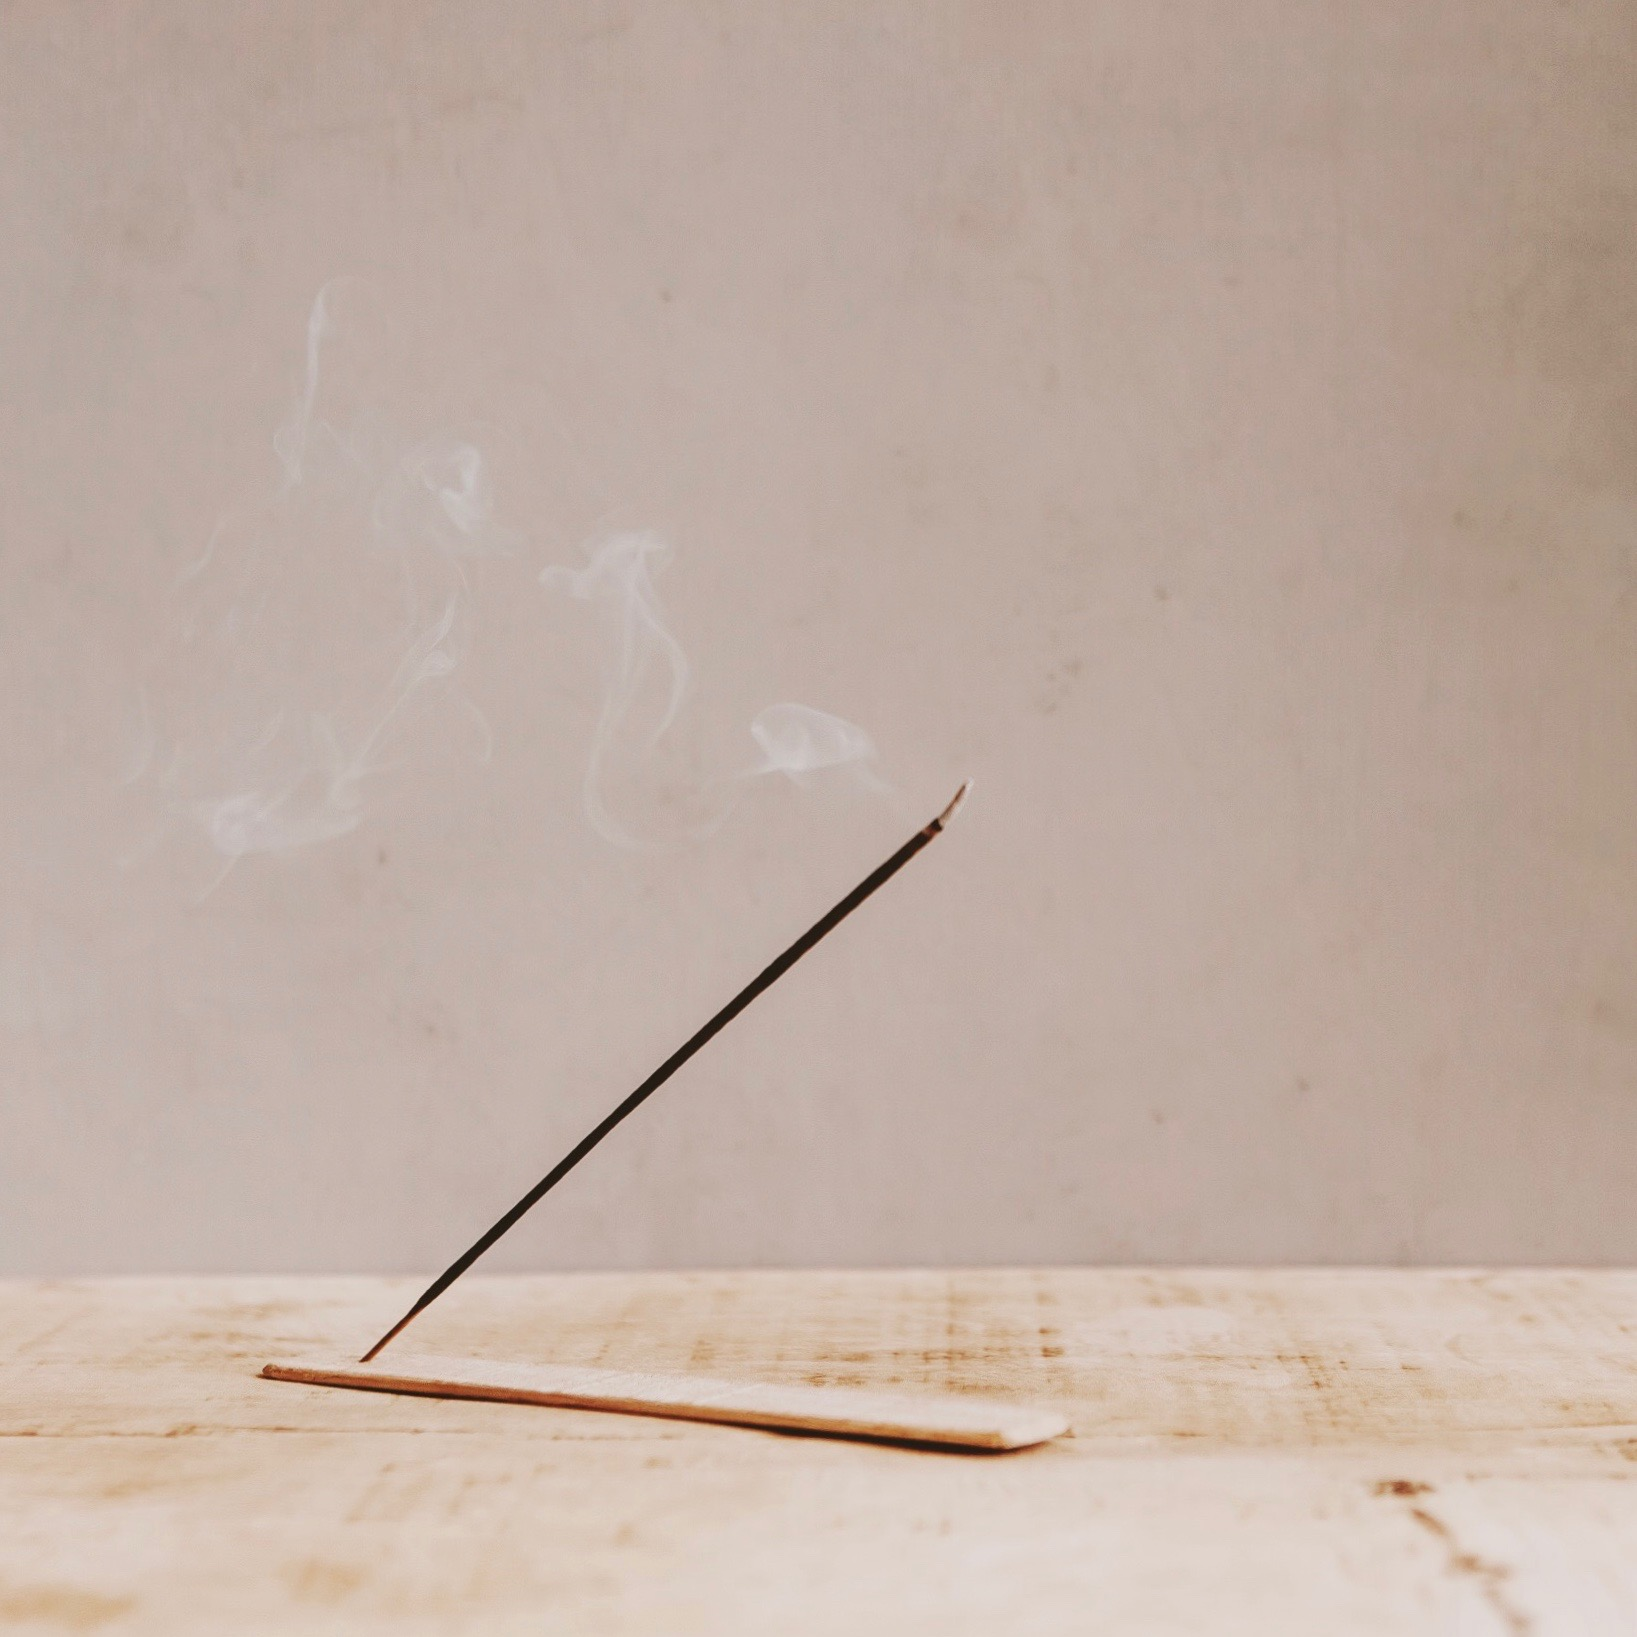 Incense | all imagery by E+A